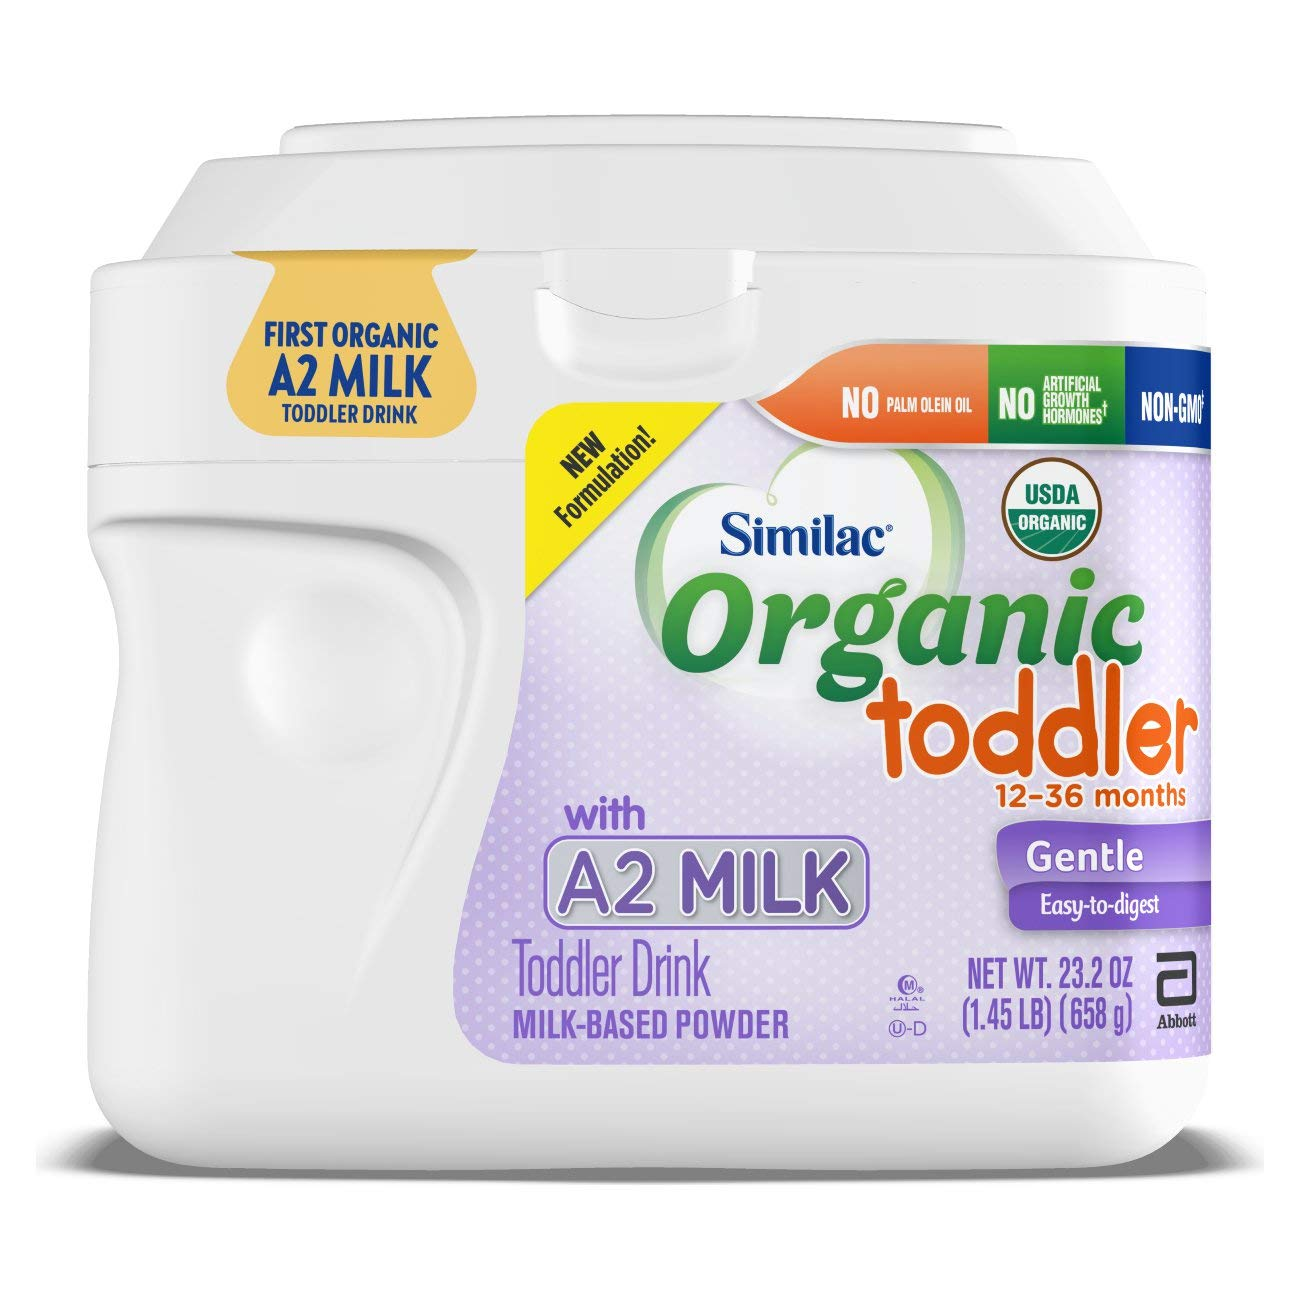 Similac First Only USDA Organic Toddler Popular standard Ge A2 Drink low-pricing with Milk